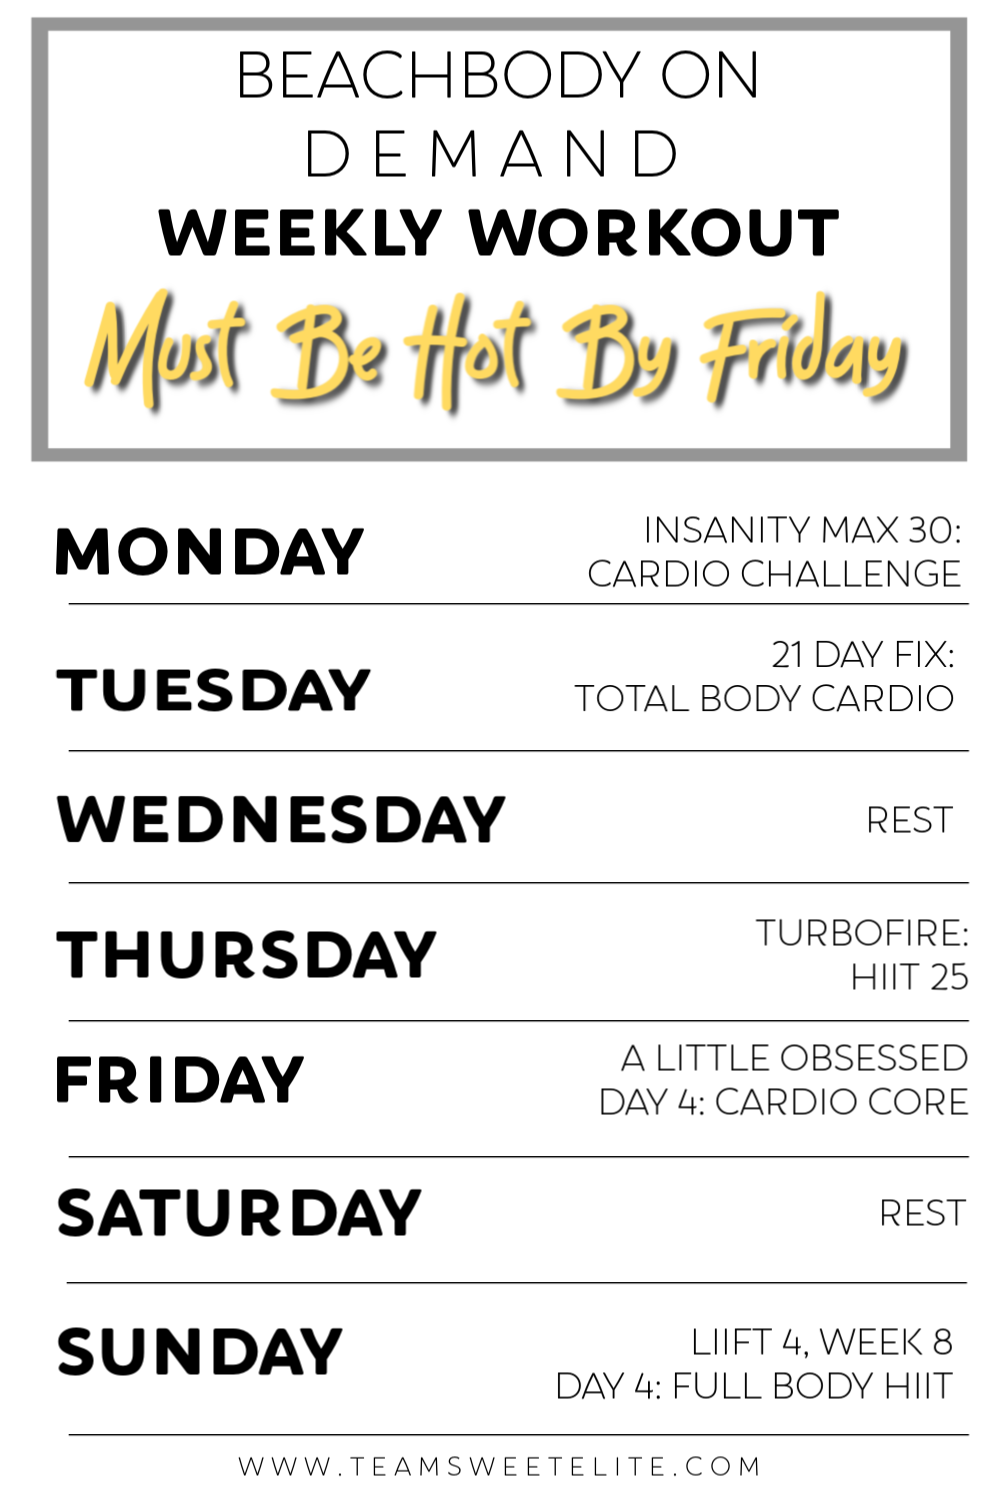 Beachbody On Demand Weekly Workout: Must Be Hot By Friday - Team